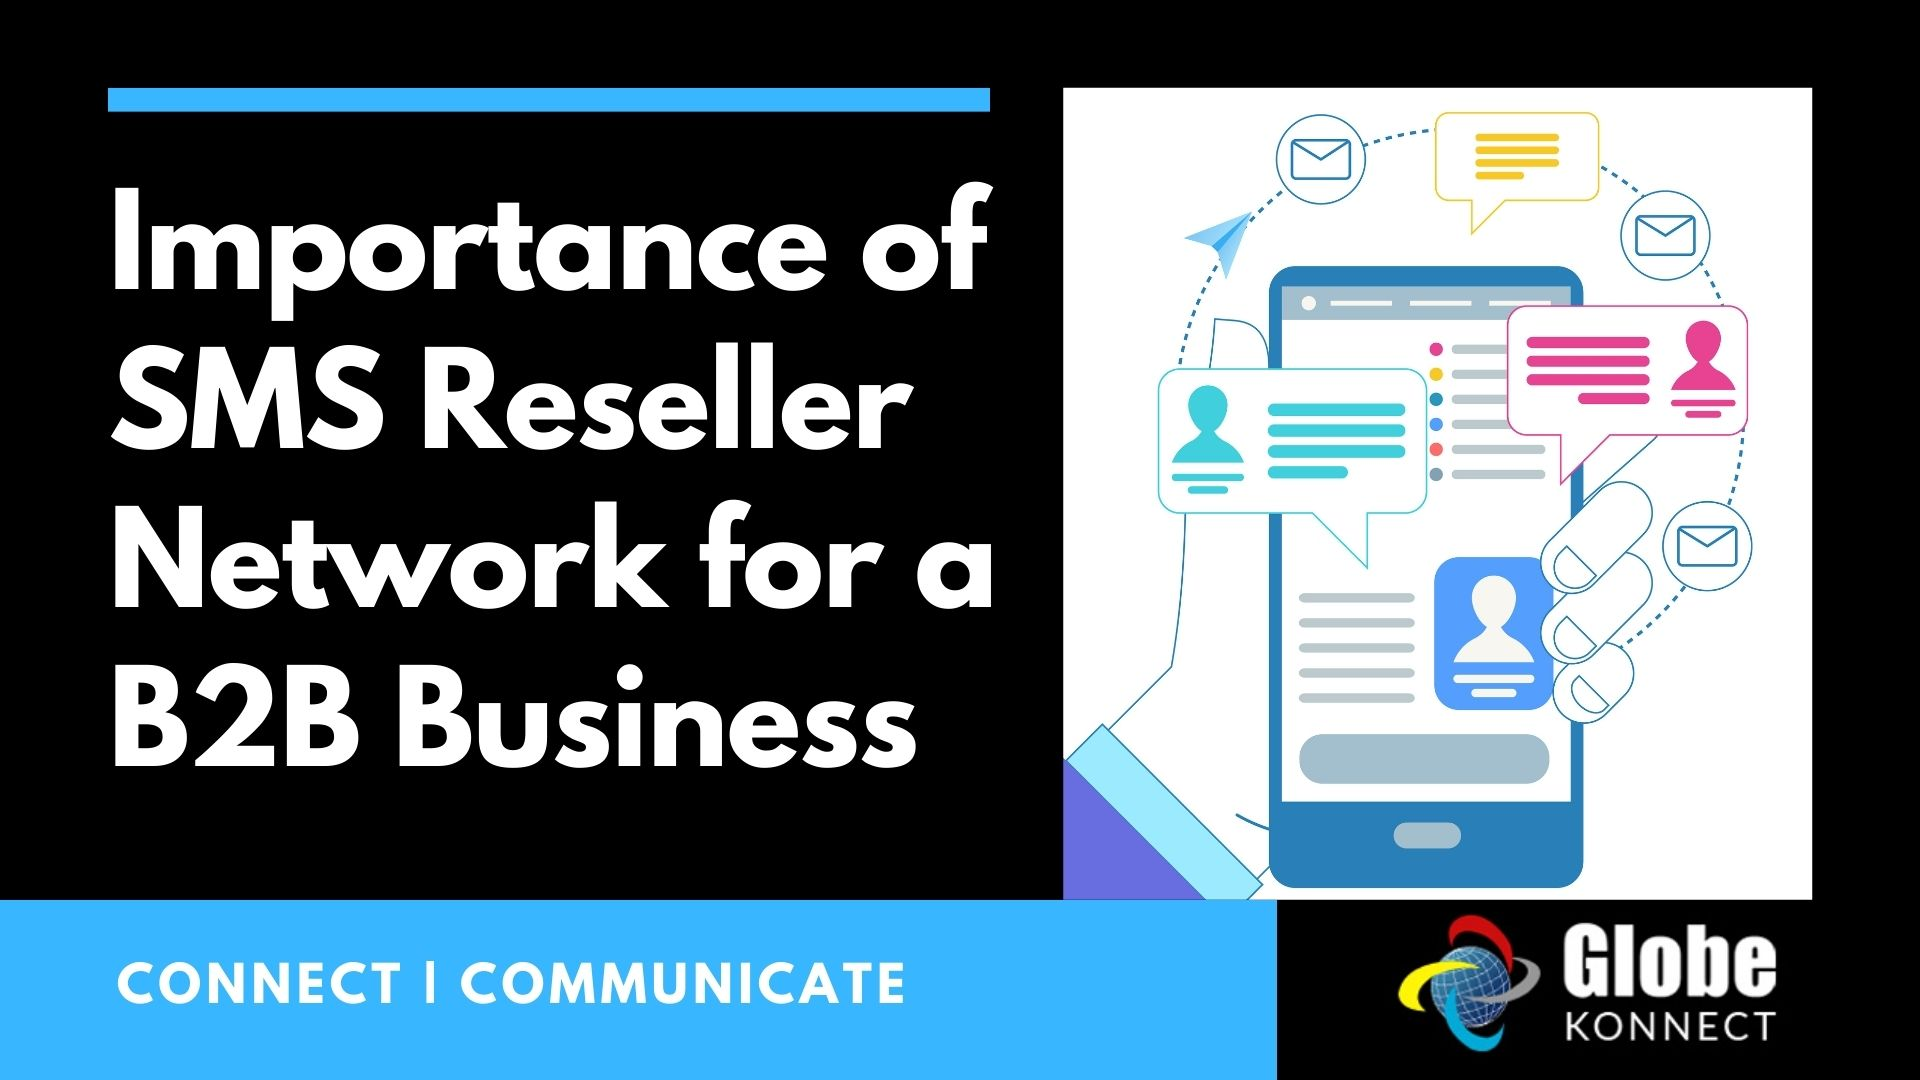 Importance of SMS Reseller Network for a B2B Business